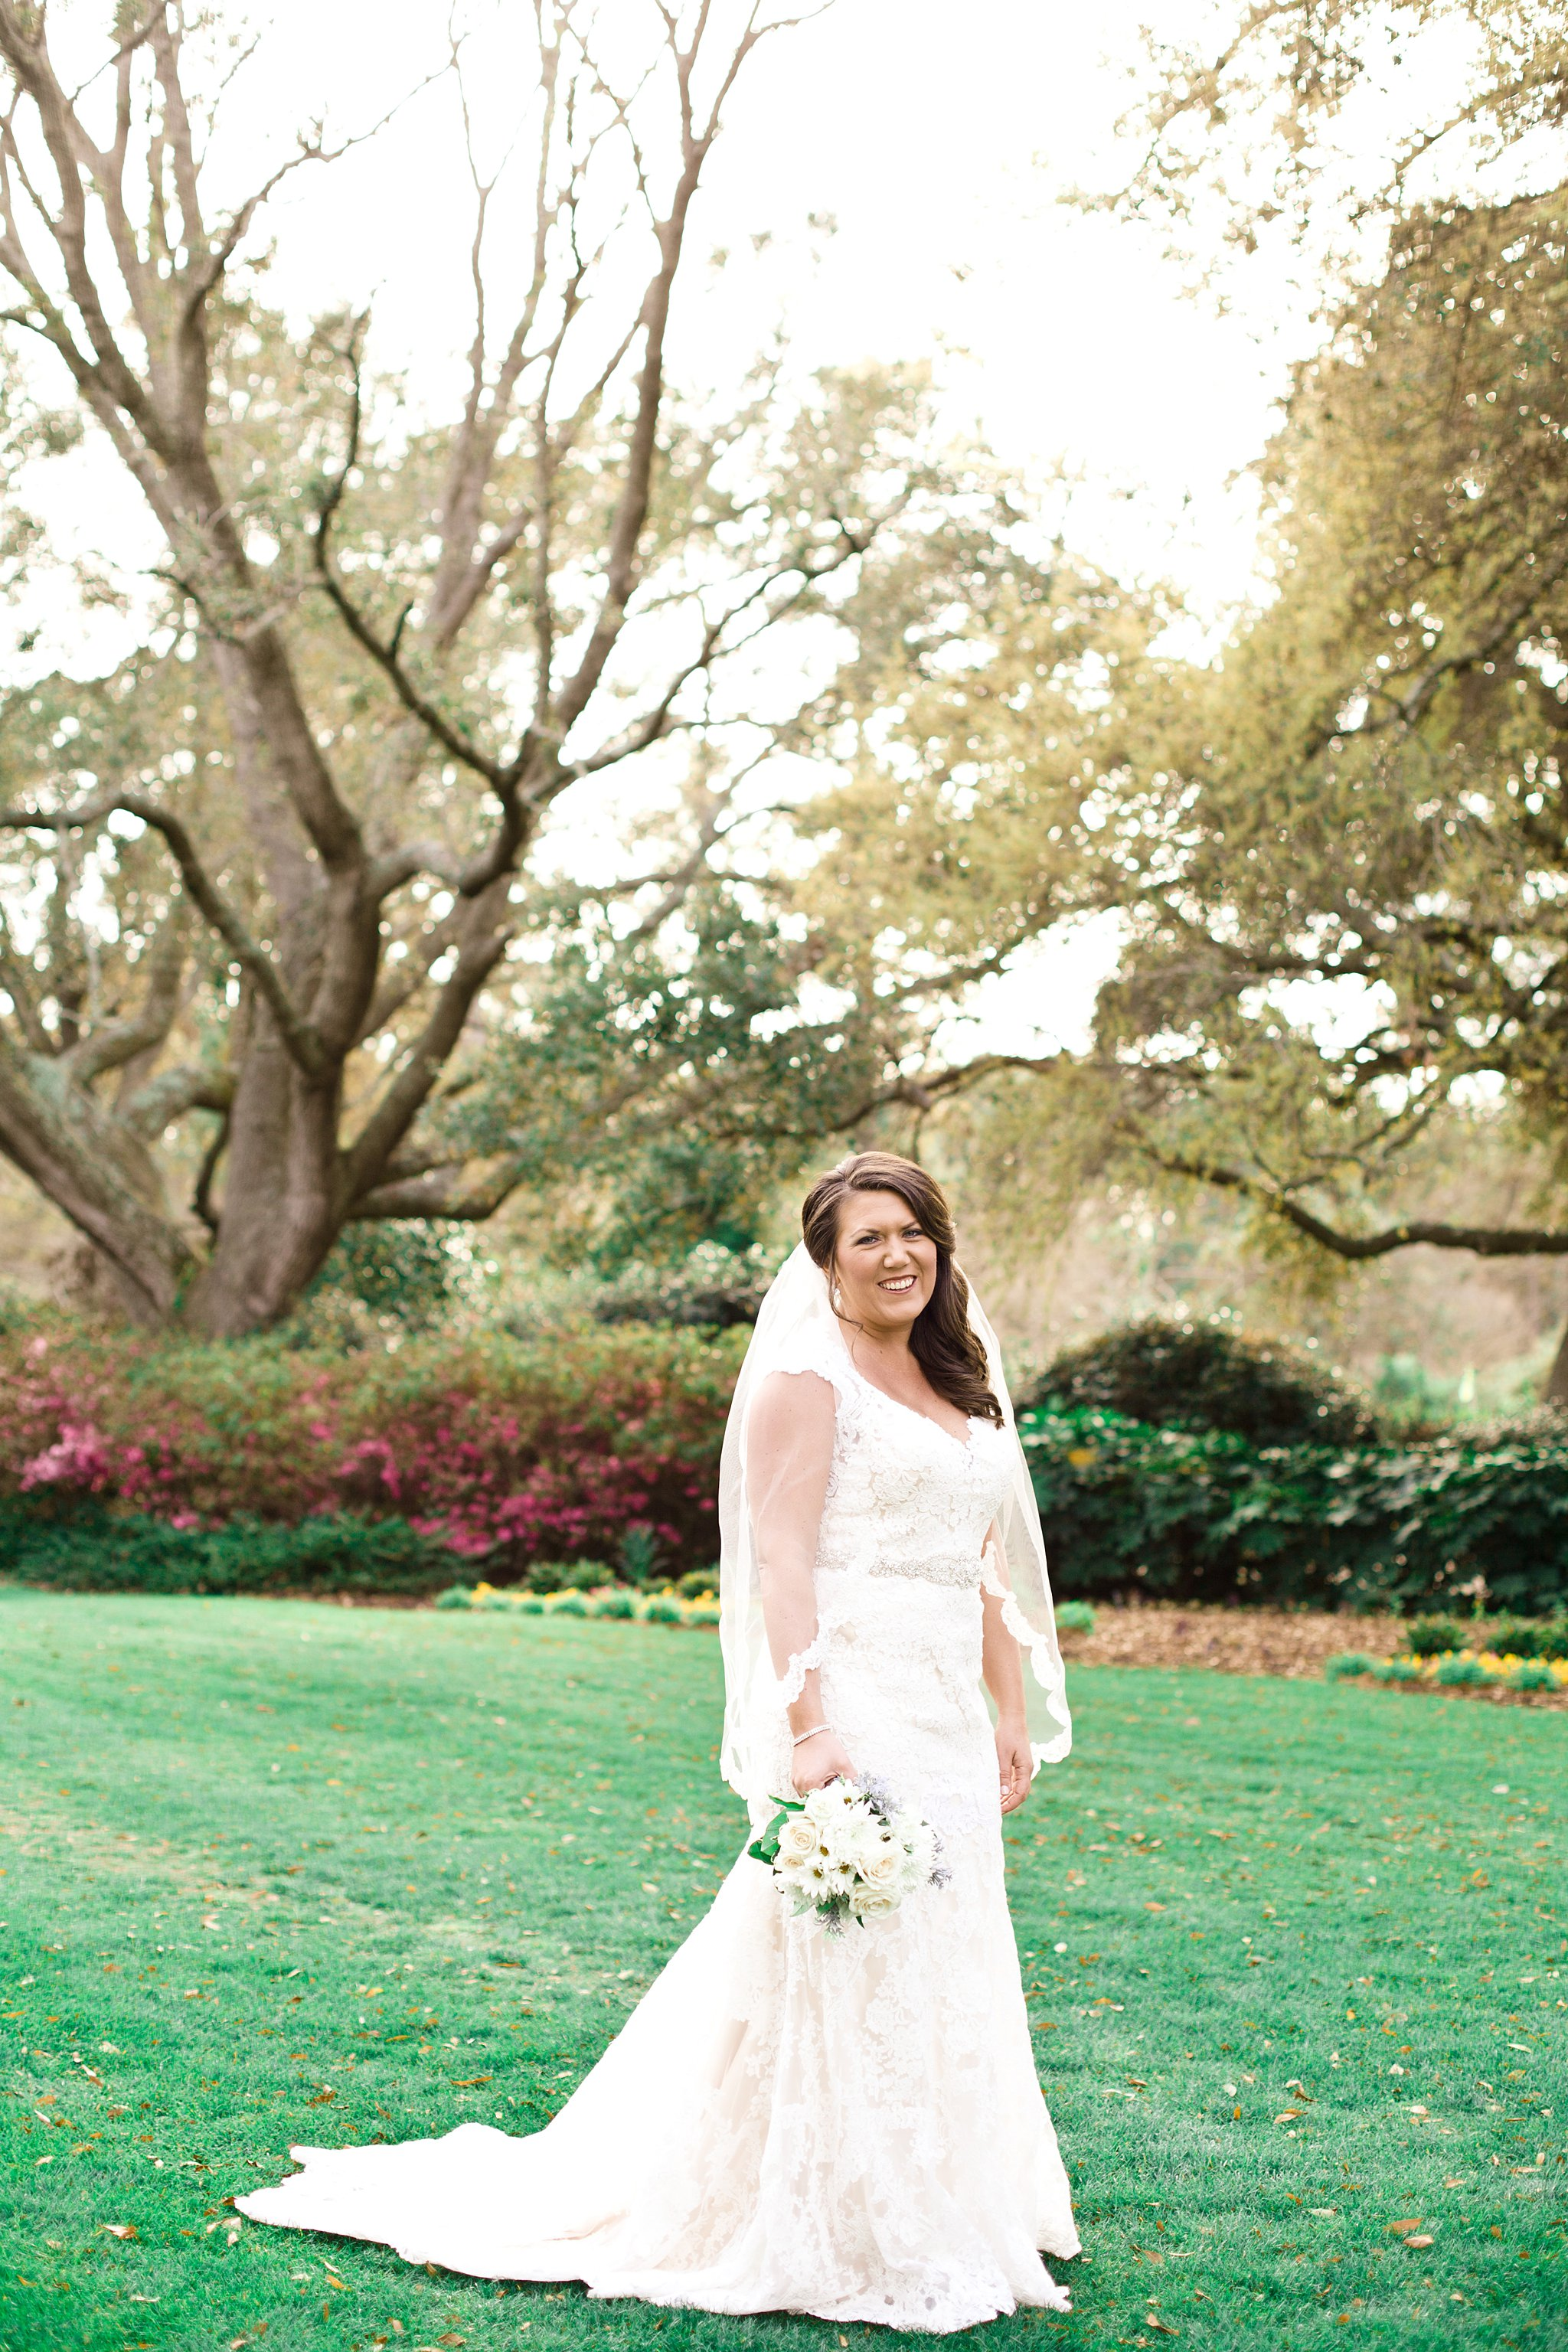 litchfield-golf-country-club-bridal-session-pawleys-island-sc-photos_0118.jpg